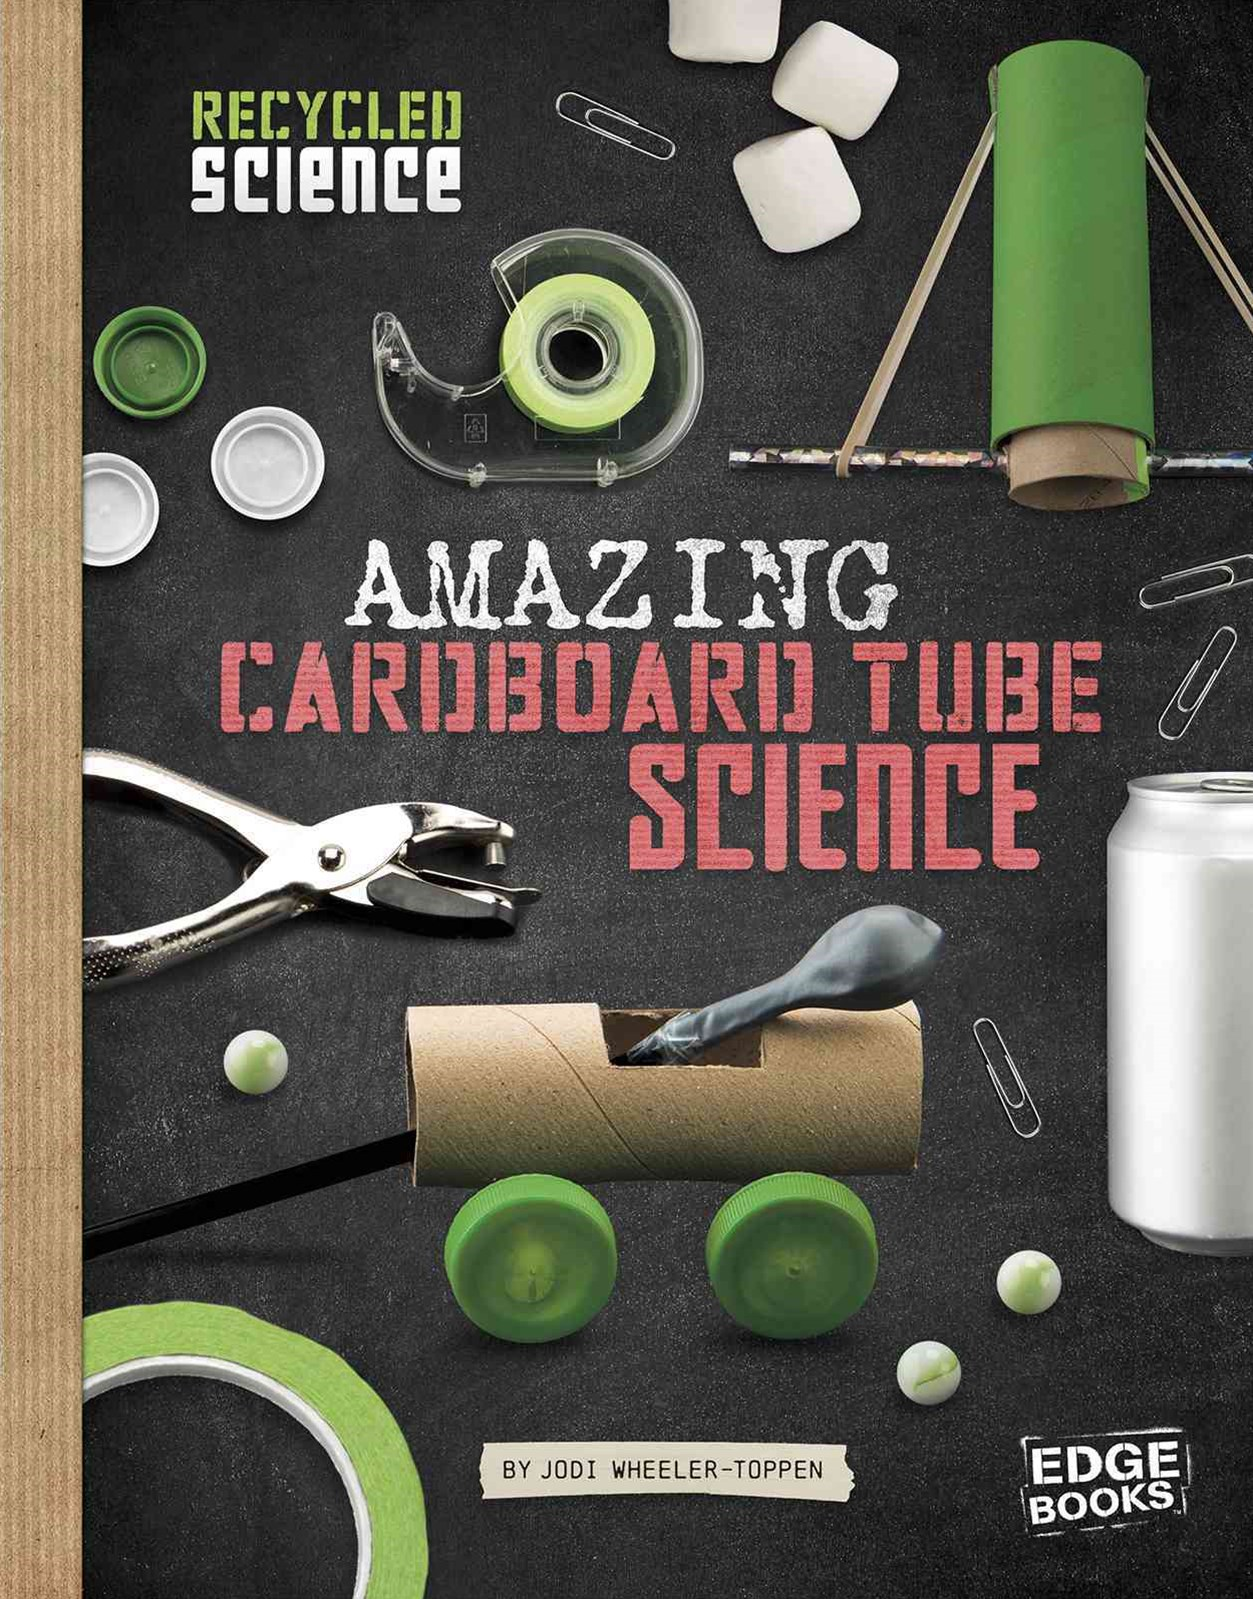 Recycled Science: Amazing Cardboard Tube Science